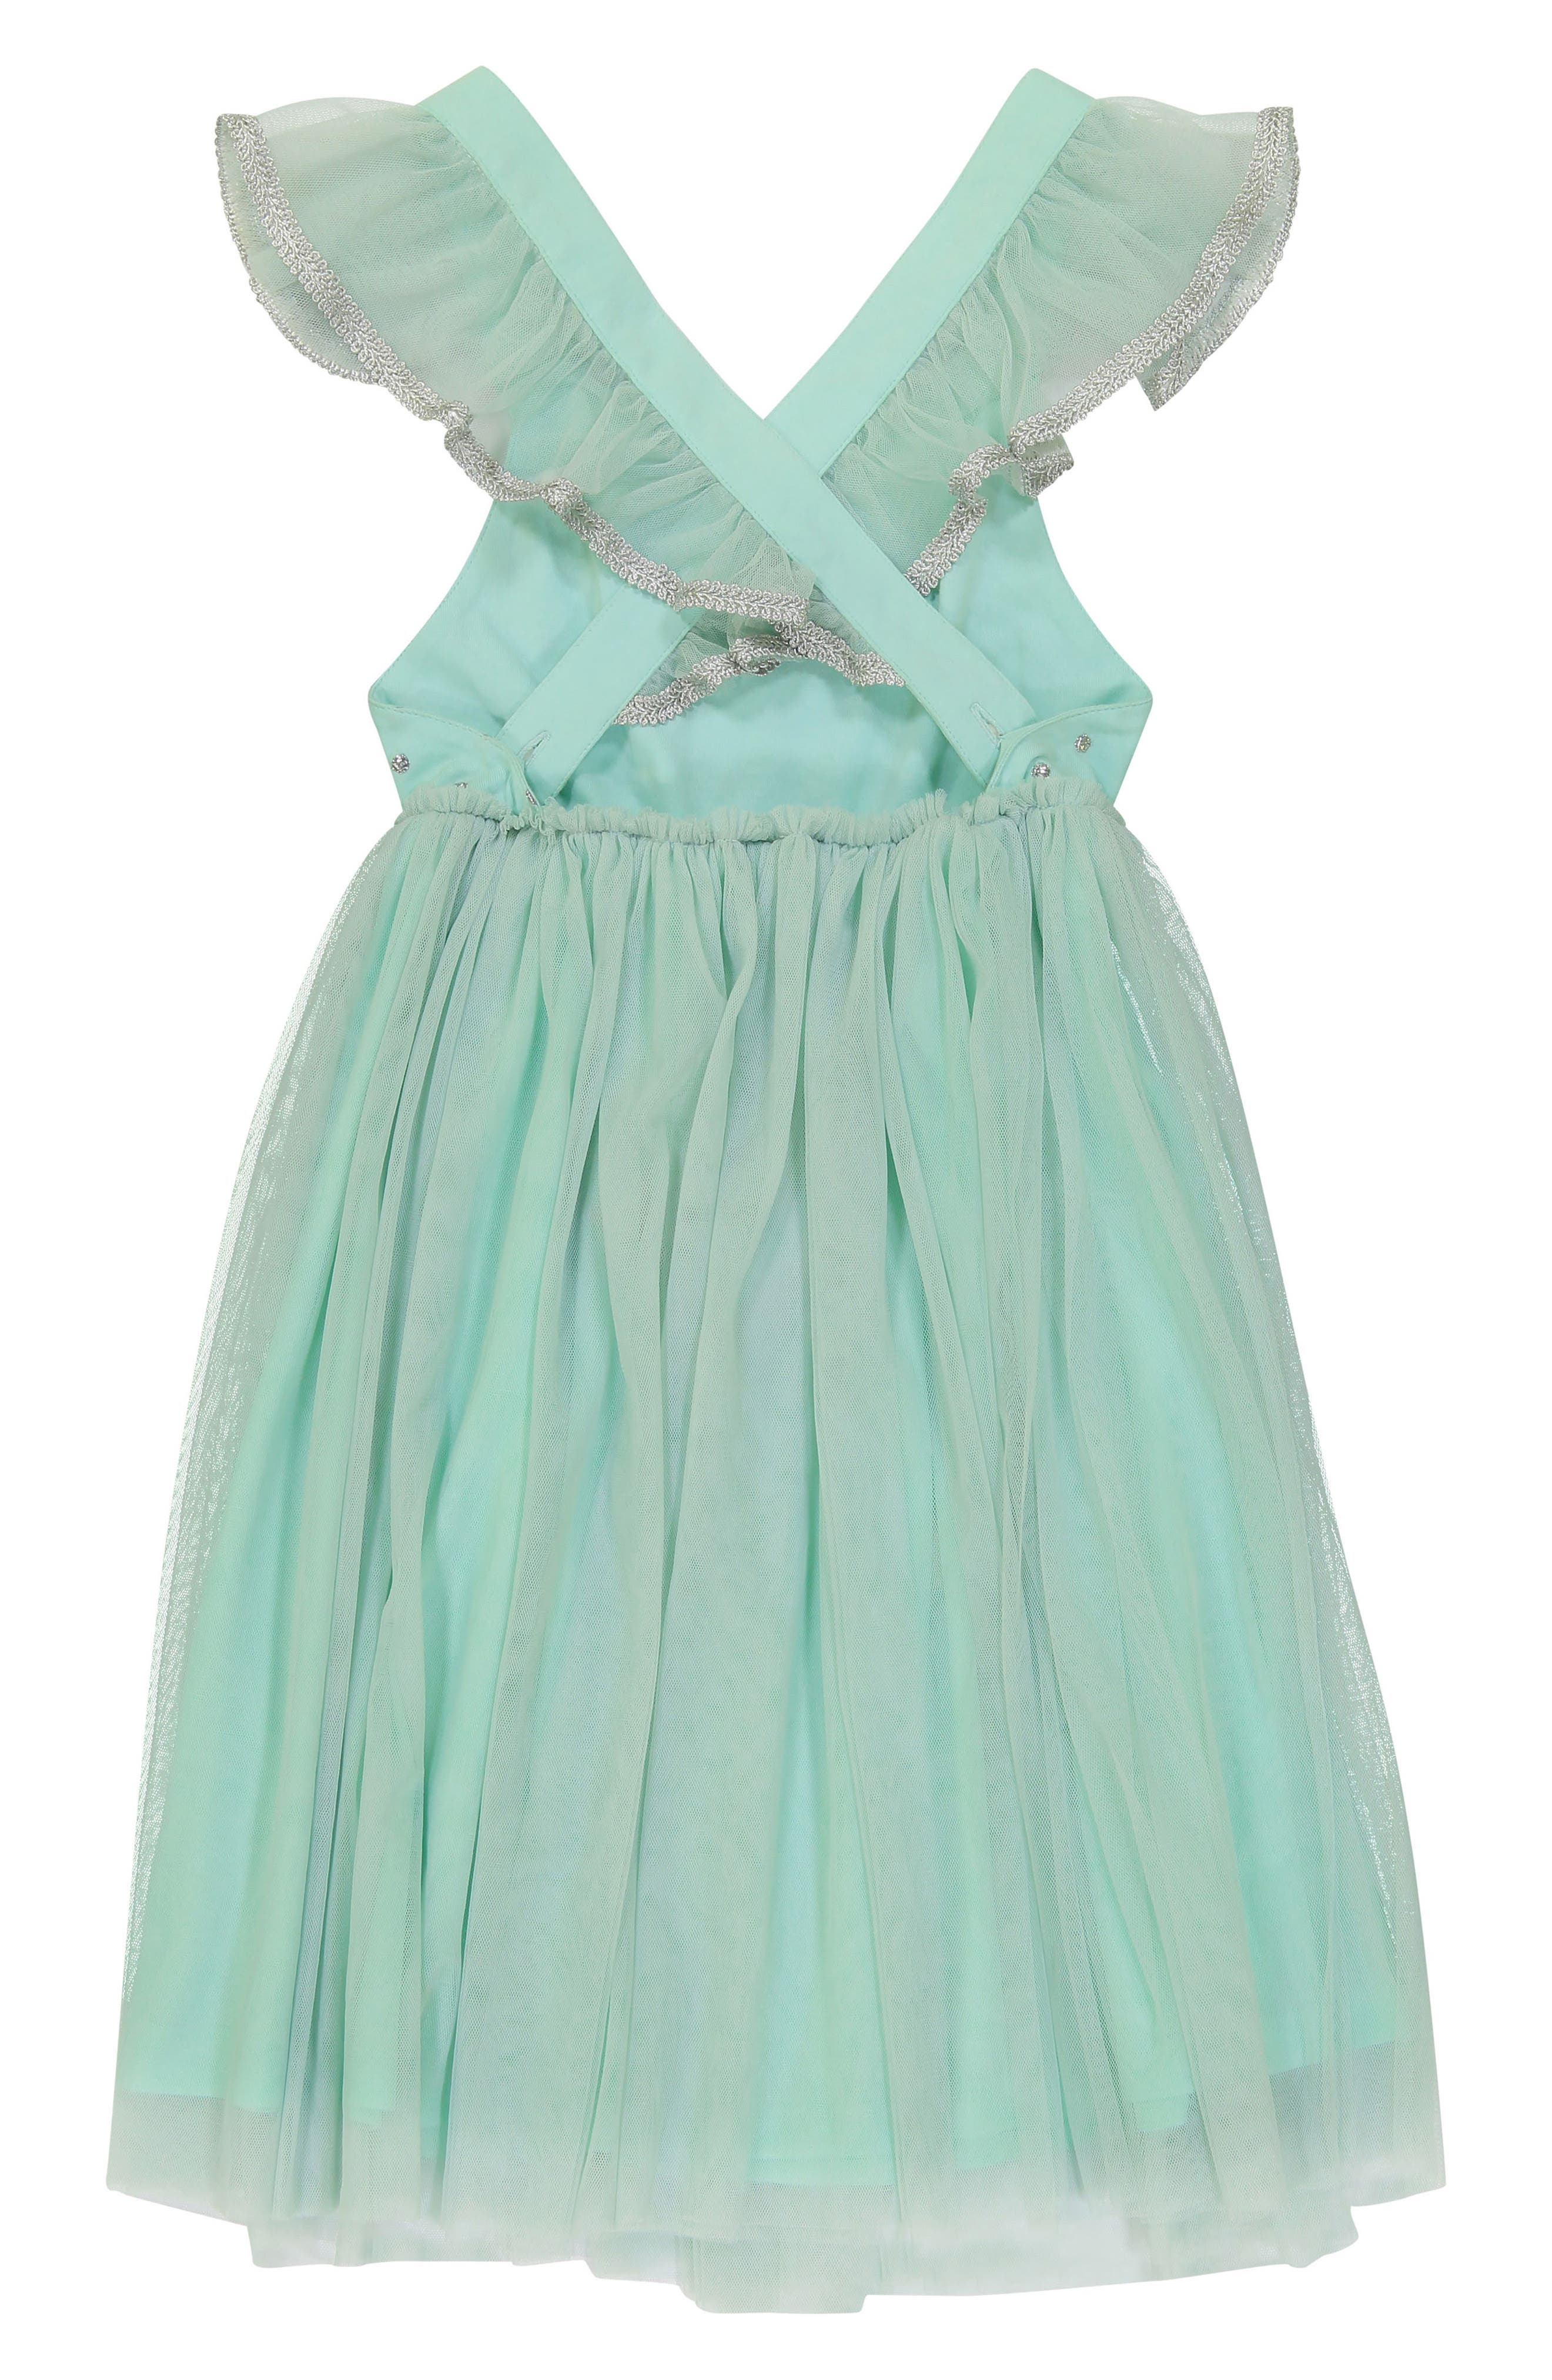 Diya Tulle Sundress,                             Alternate thumbnail 2, color,                             Turquoise